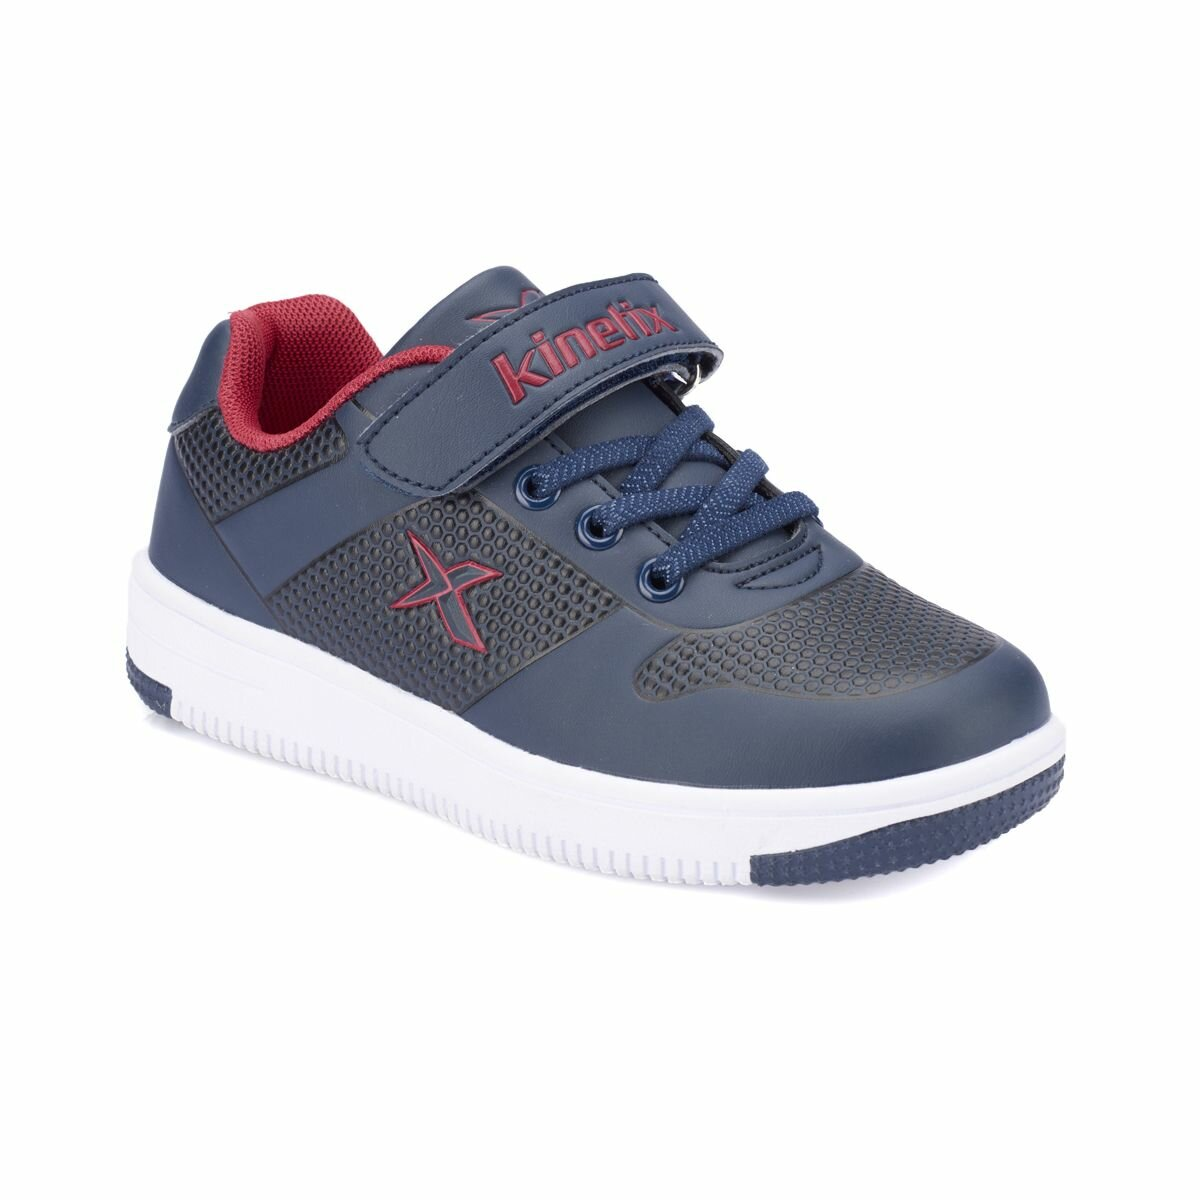 FLO DINRO Navy Blue Male Child Sneaker Shoes KINETIX